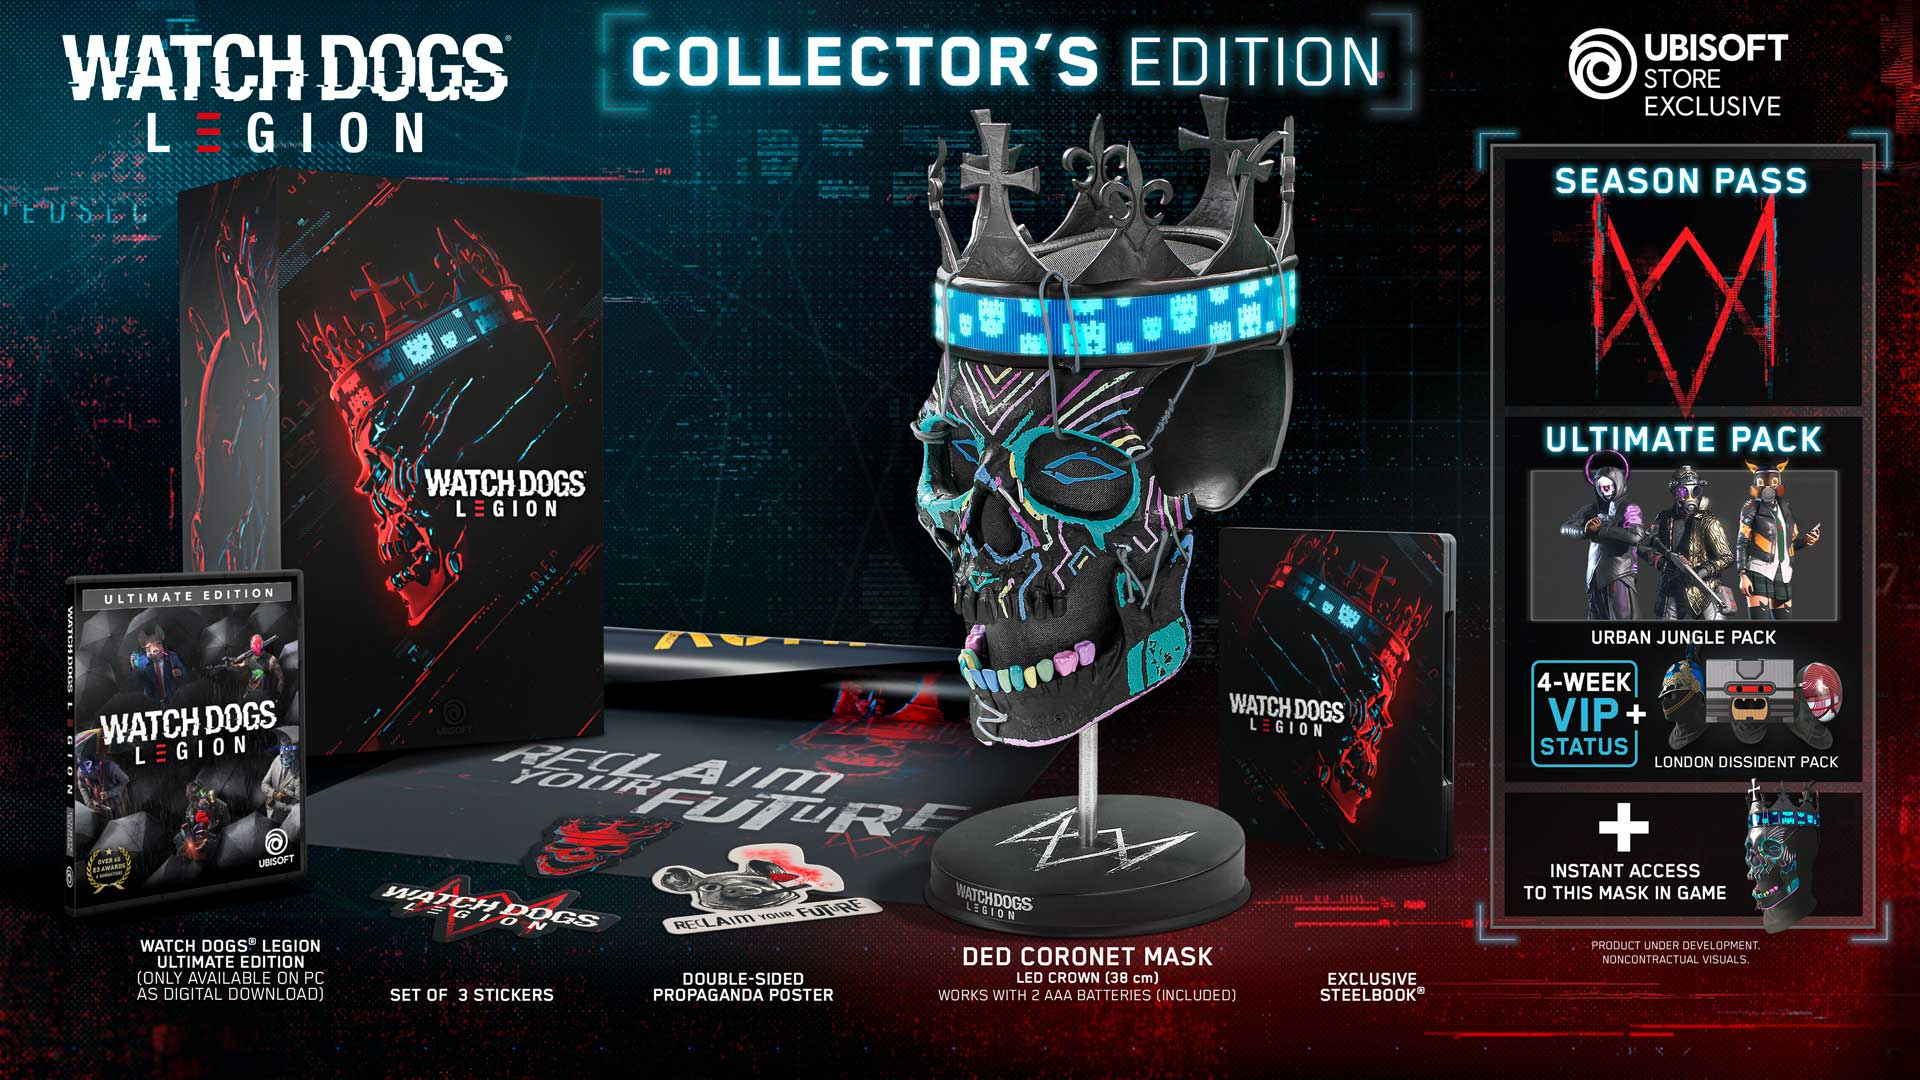 Watch Dogs: Legion collector's edition